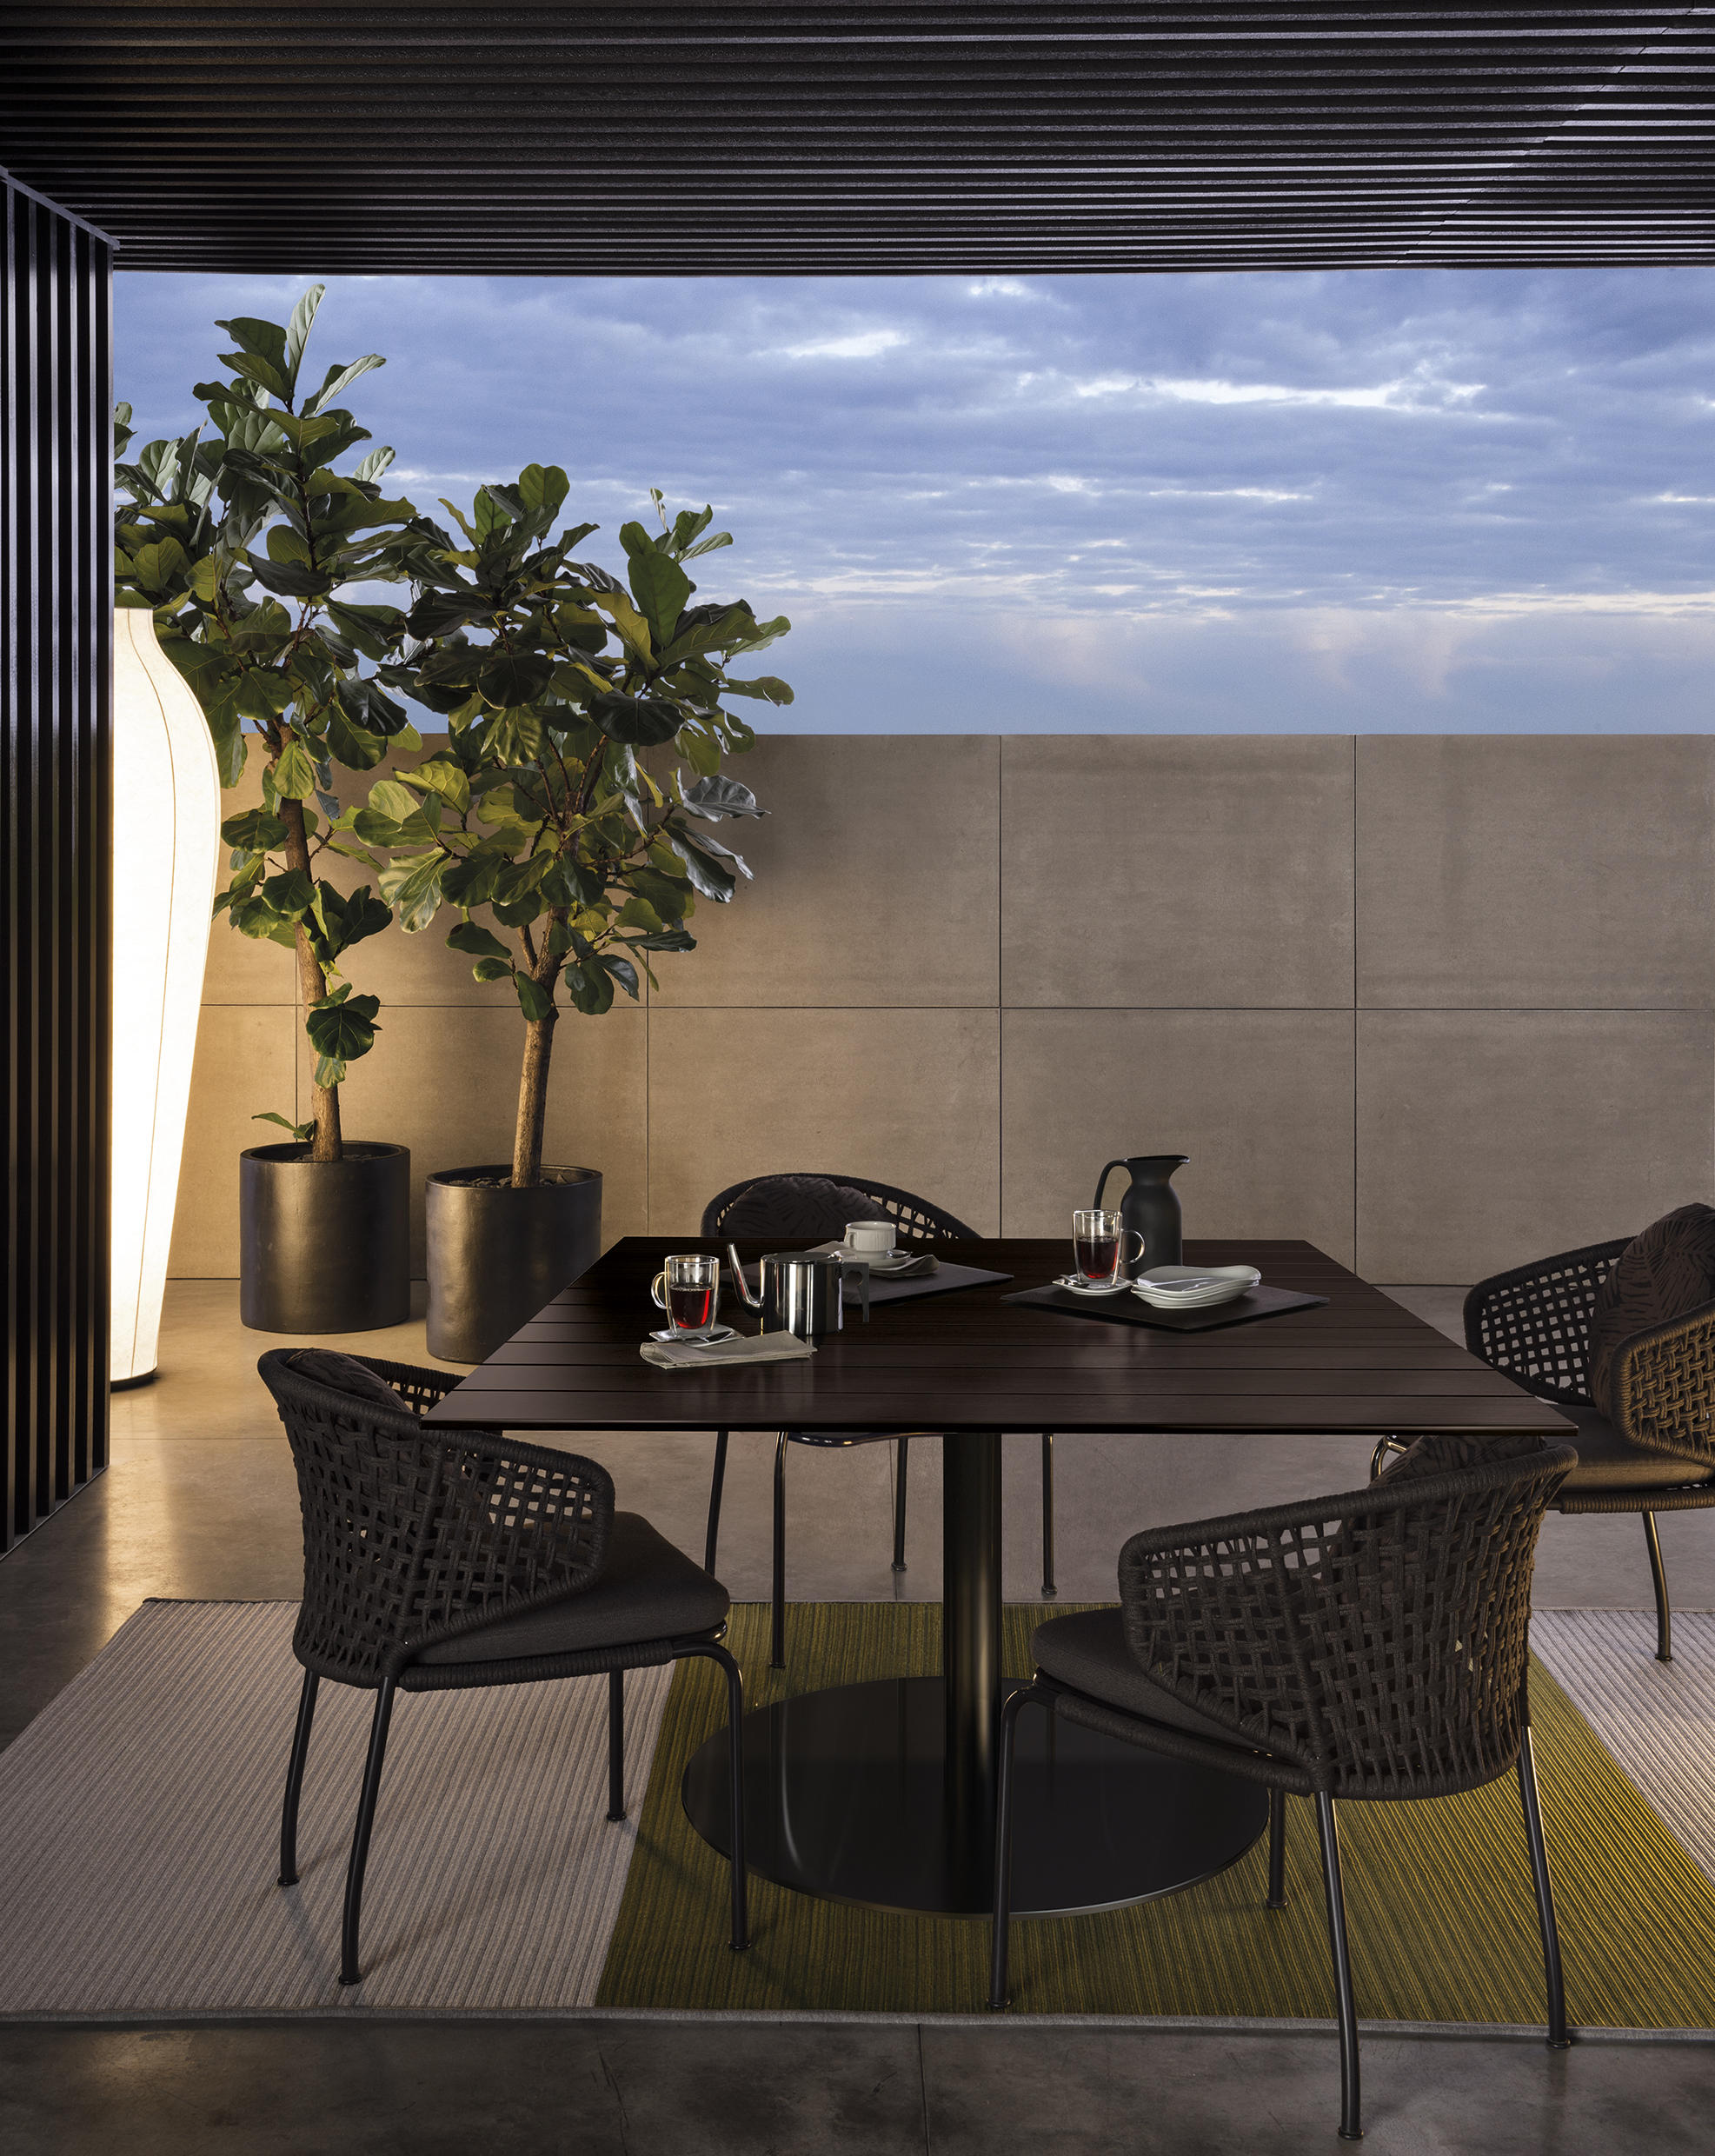 minotti outdoor furniture. Bellagio Outdoor Lounge H61 By Minotti Furniture